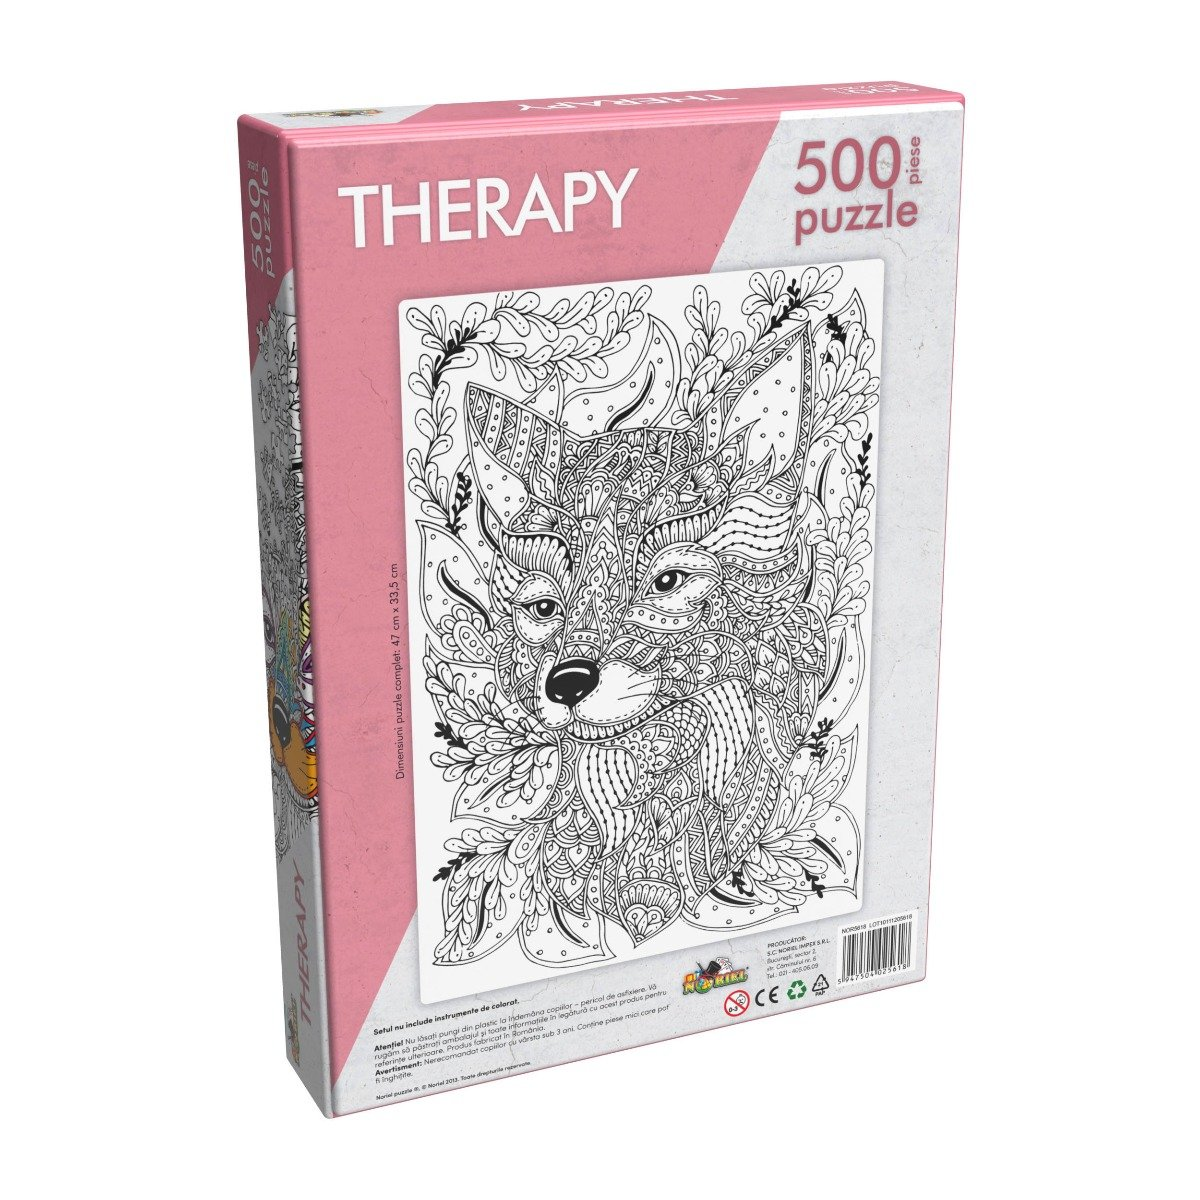 Puzzle clasic Noriel - Therapy, 500 piese